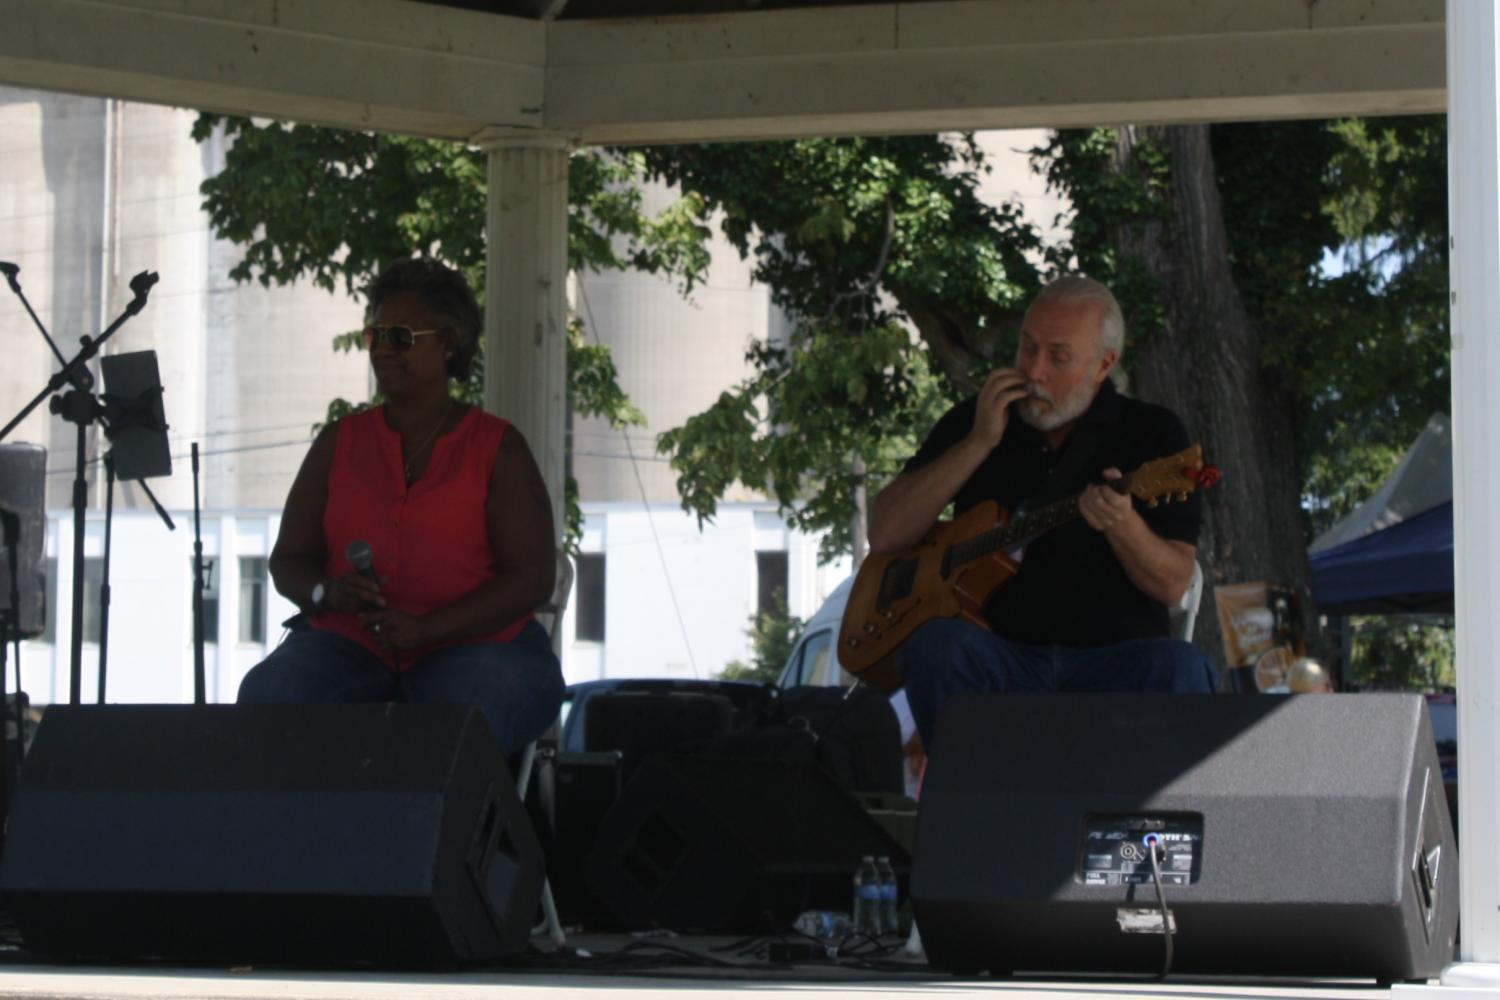 Robbie Bartlett, who has been performing around the Louisville area since the early 80's, appeared as one of the many musical entertainment guest for the weekend; filling the park with her warm and sultry renditions of Frank Sinatra classics.